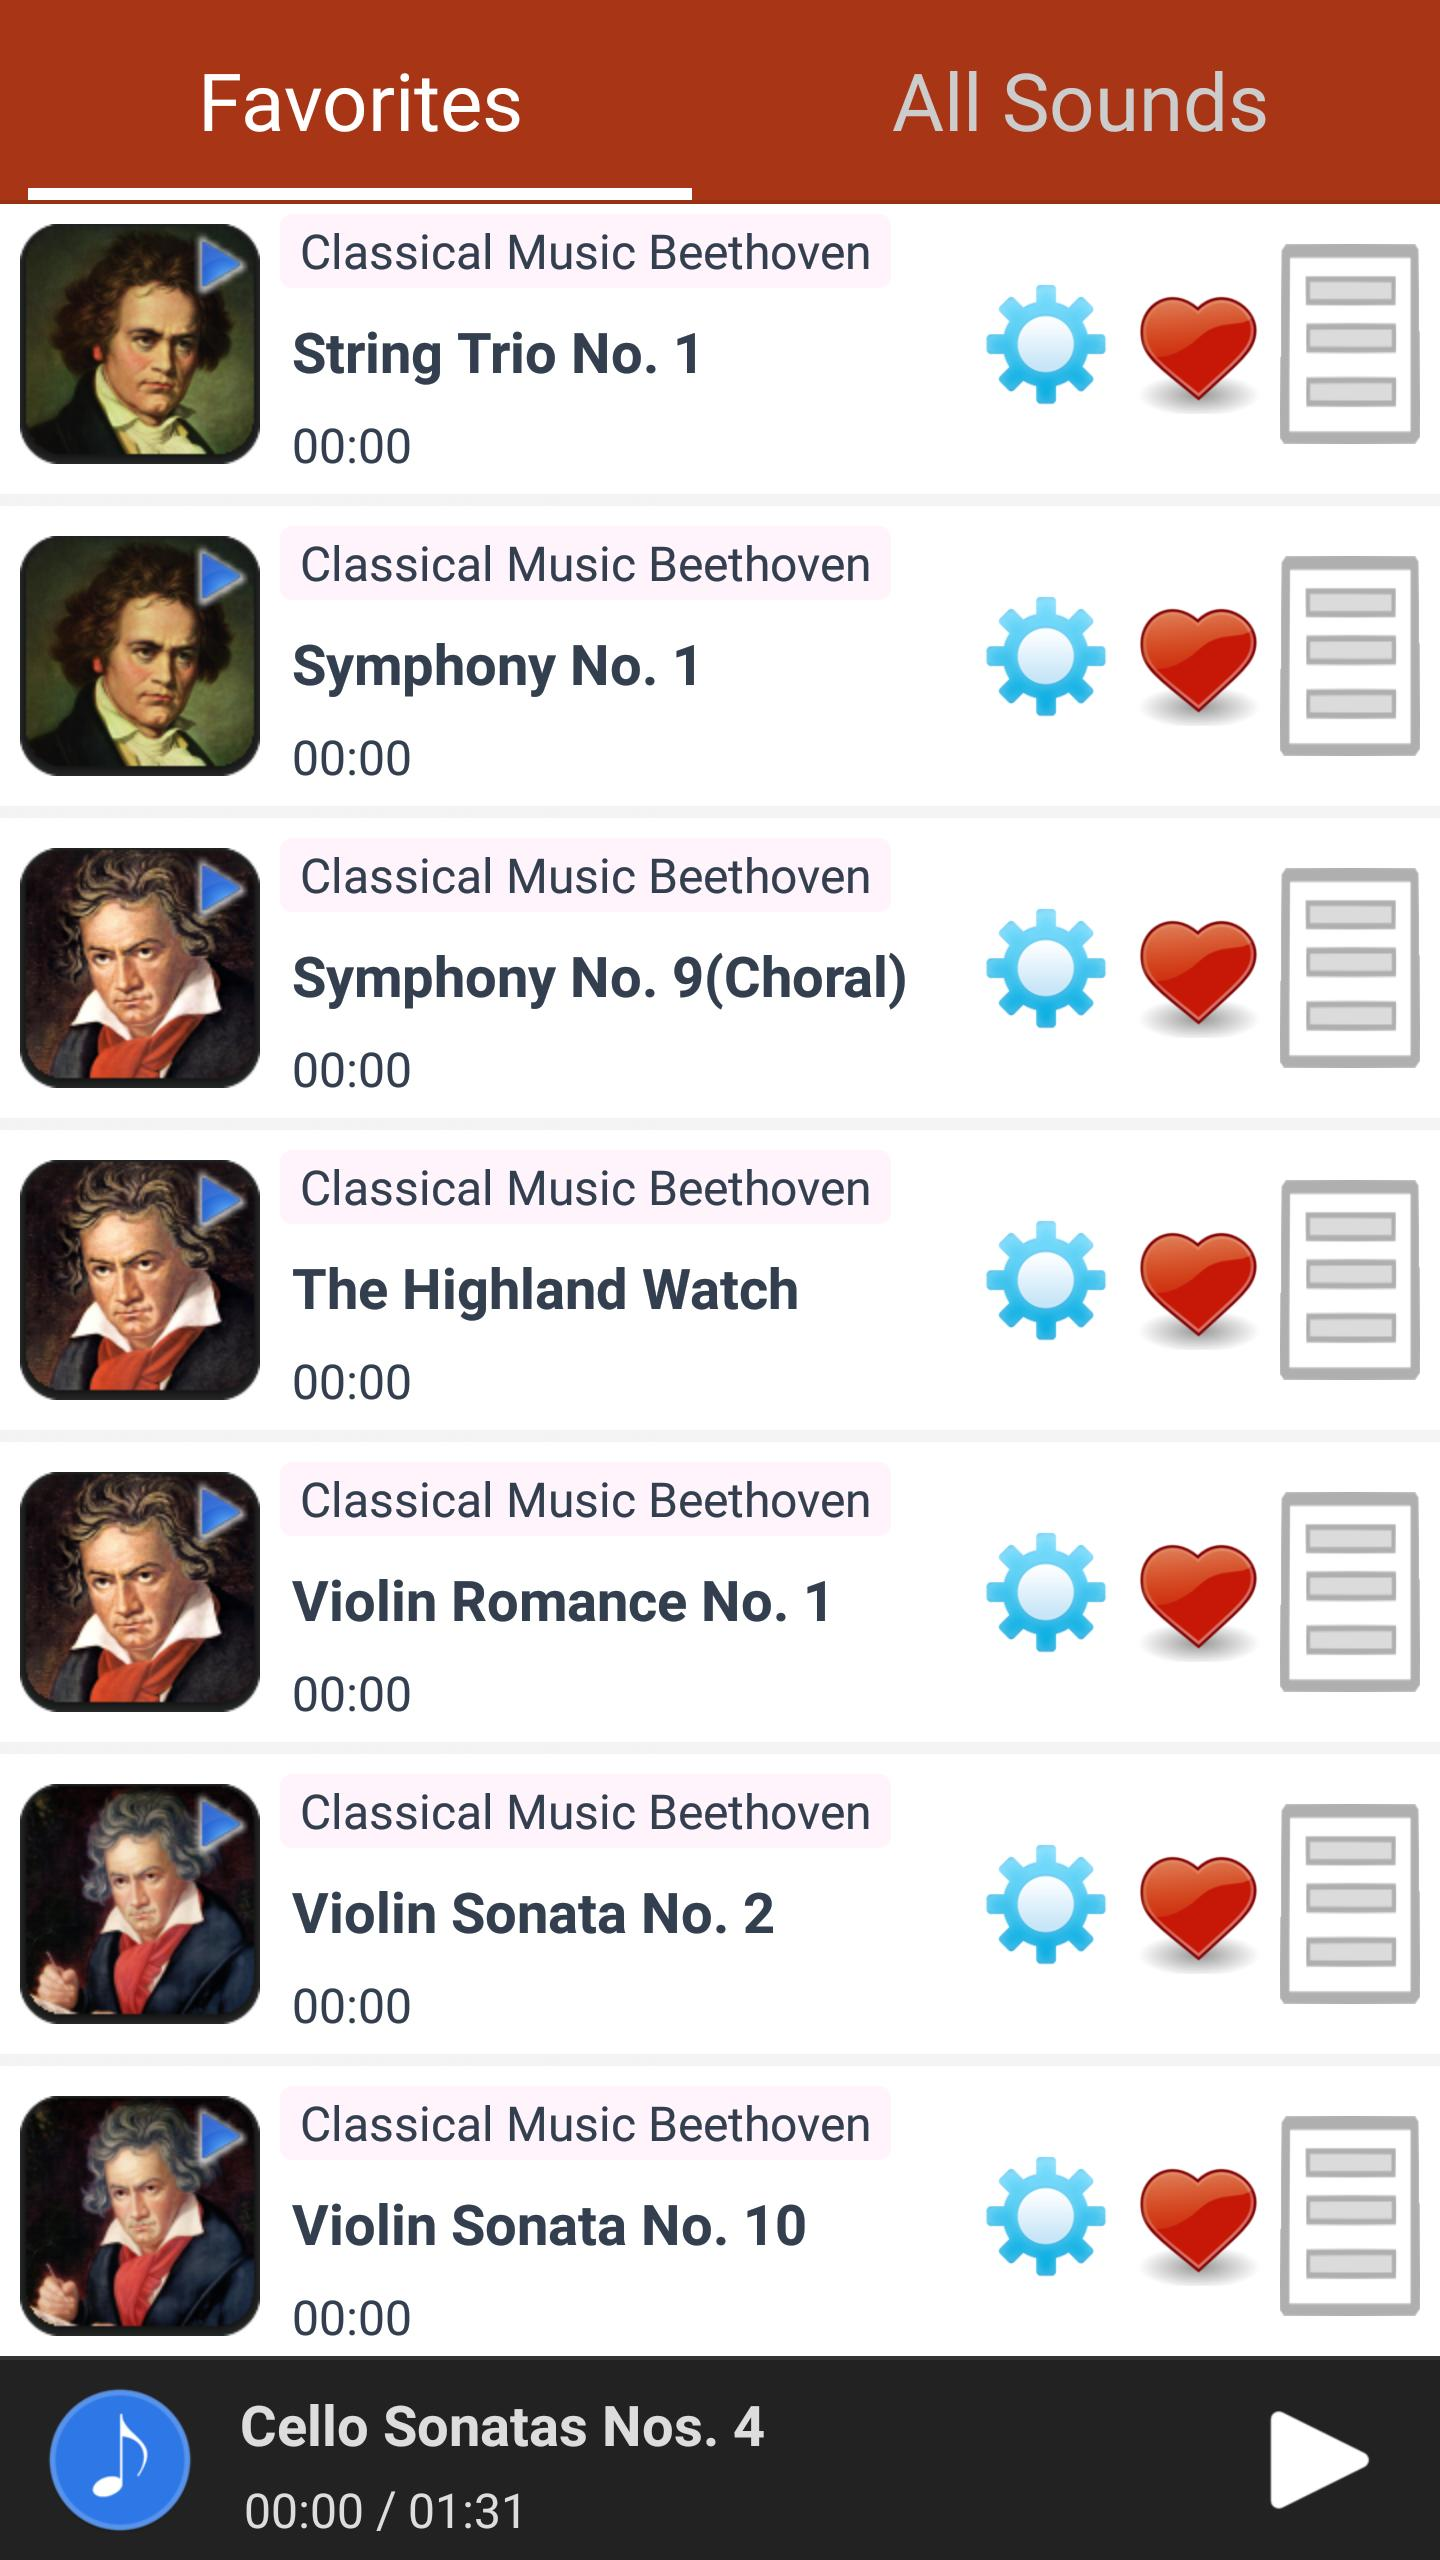 Classical Music Beethoven for Android - APK Download